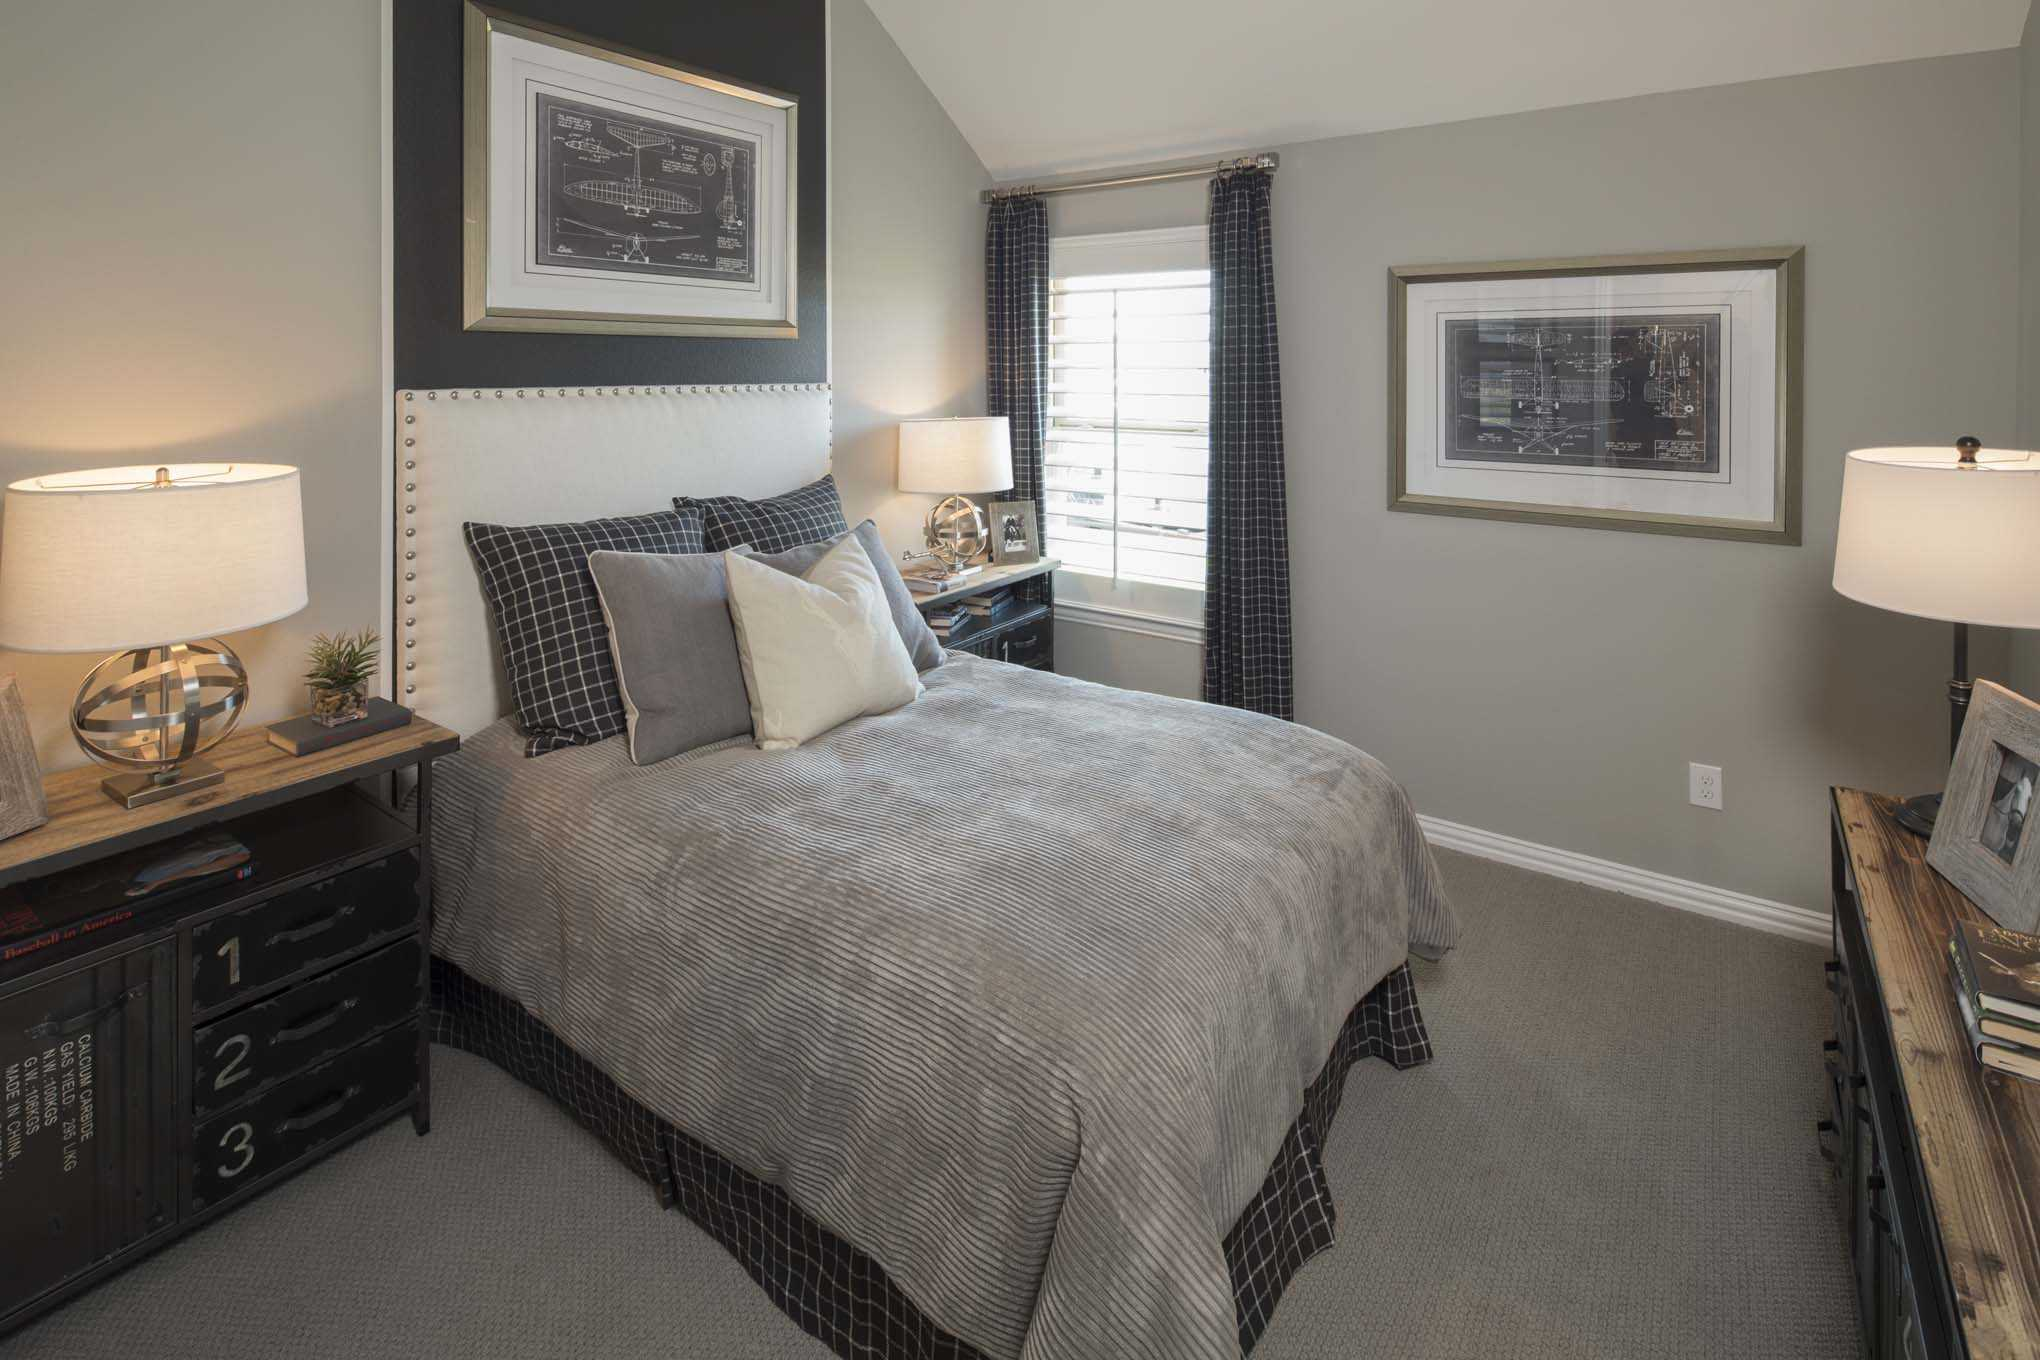 Bedroom featured in the Plan 200 By Highland Homes in Dallas, TX